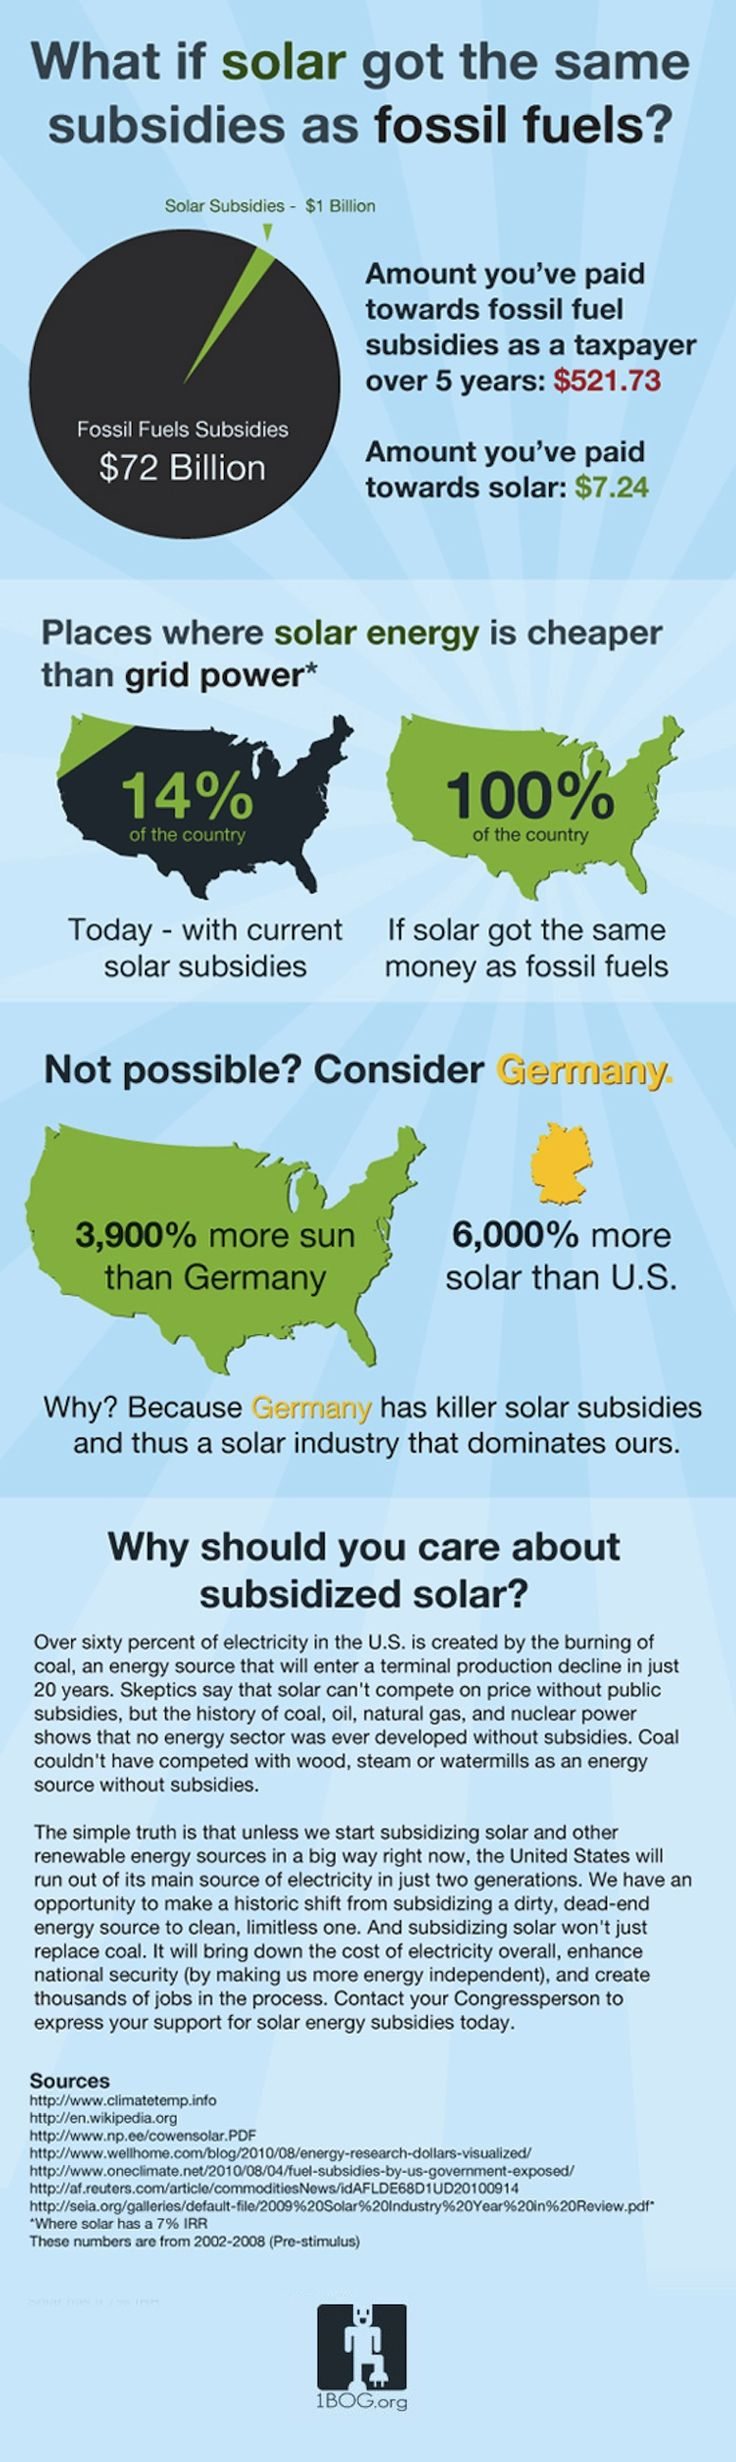 What if Solar Energy subsidies and Fossil Fuel subsidies were reversed...?